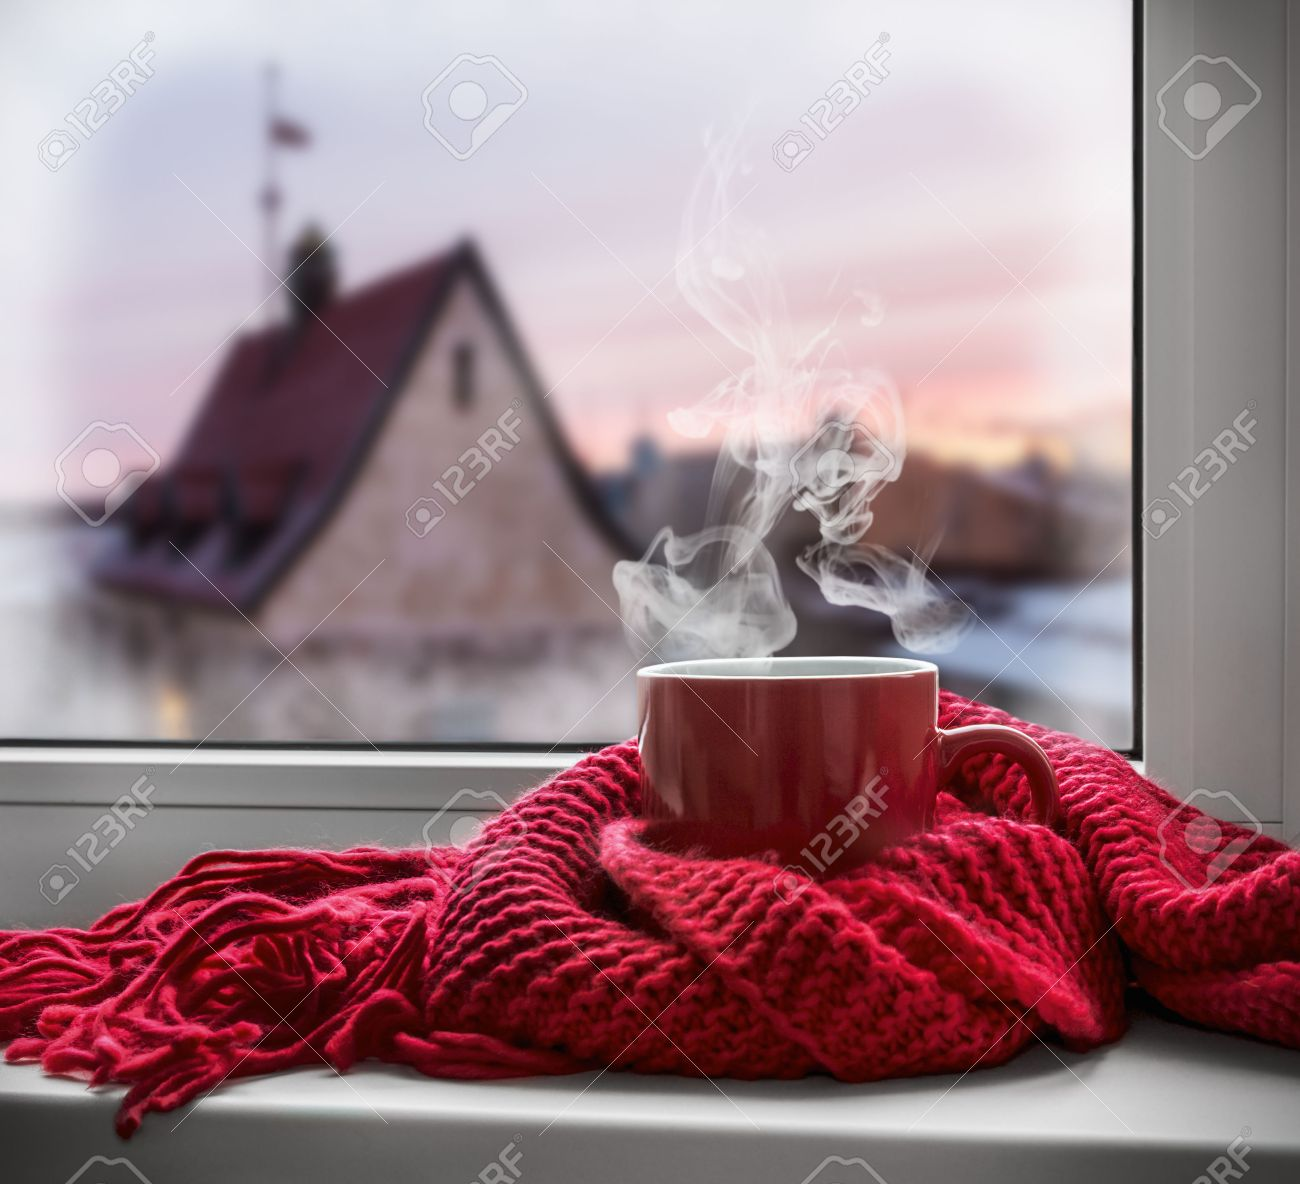 cup with a hot drink on the windowsill in the background of a winter city. Focus on the edge of the cup - 44713977